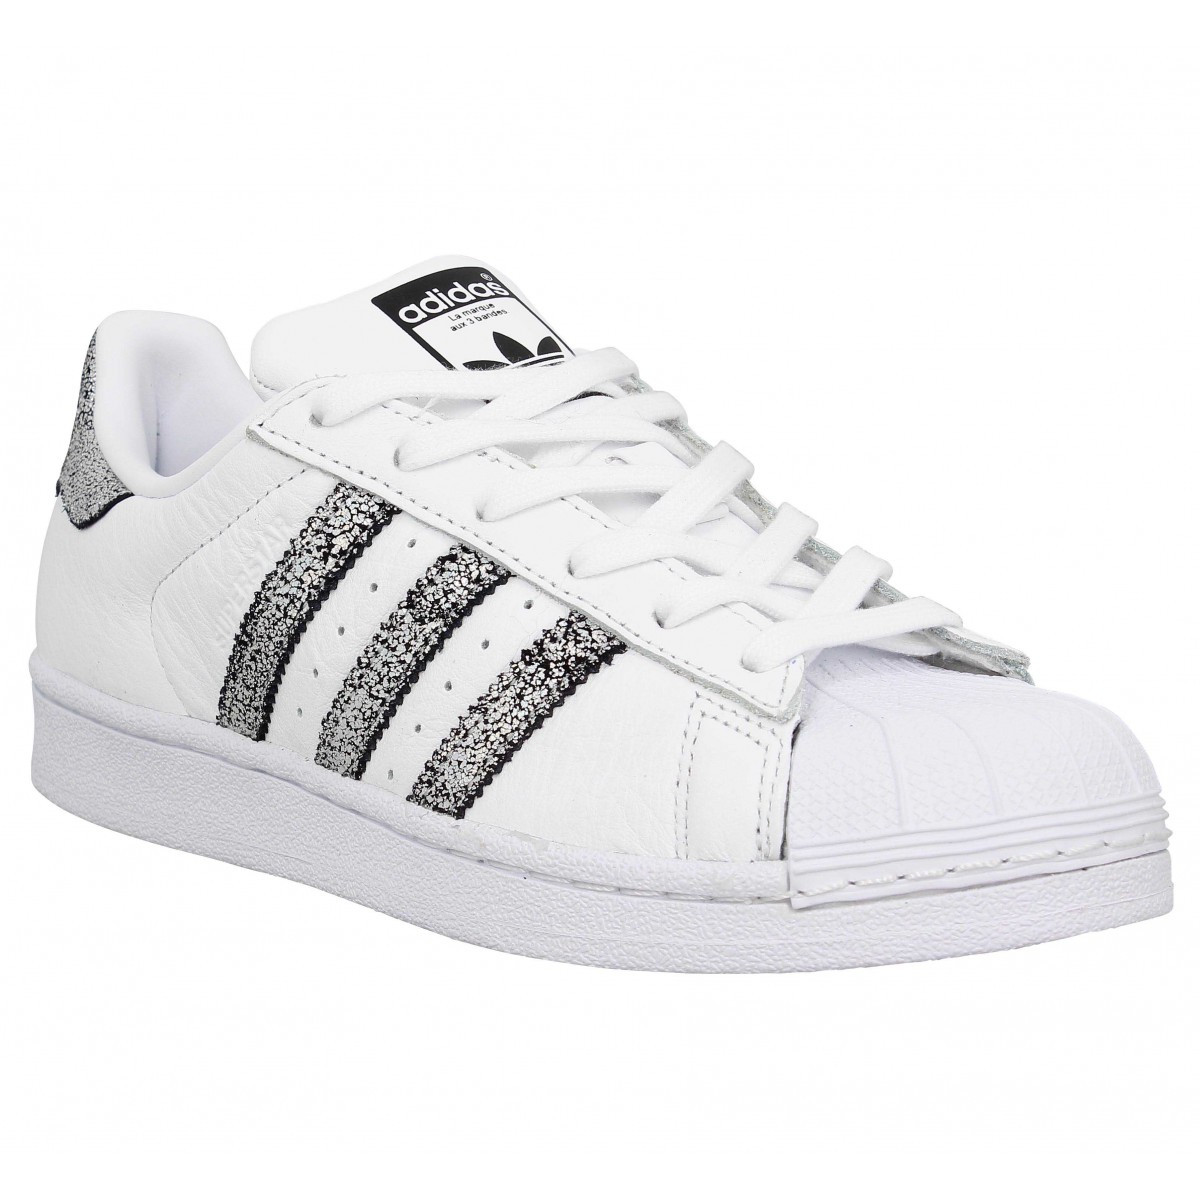 adida superstar argent